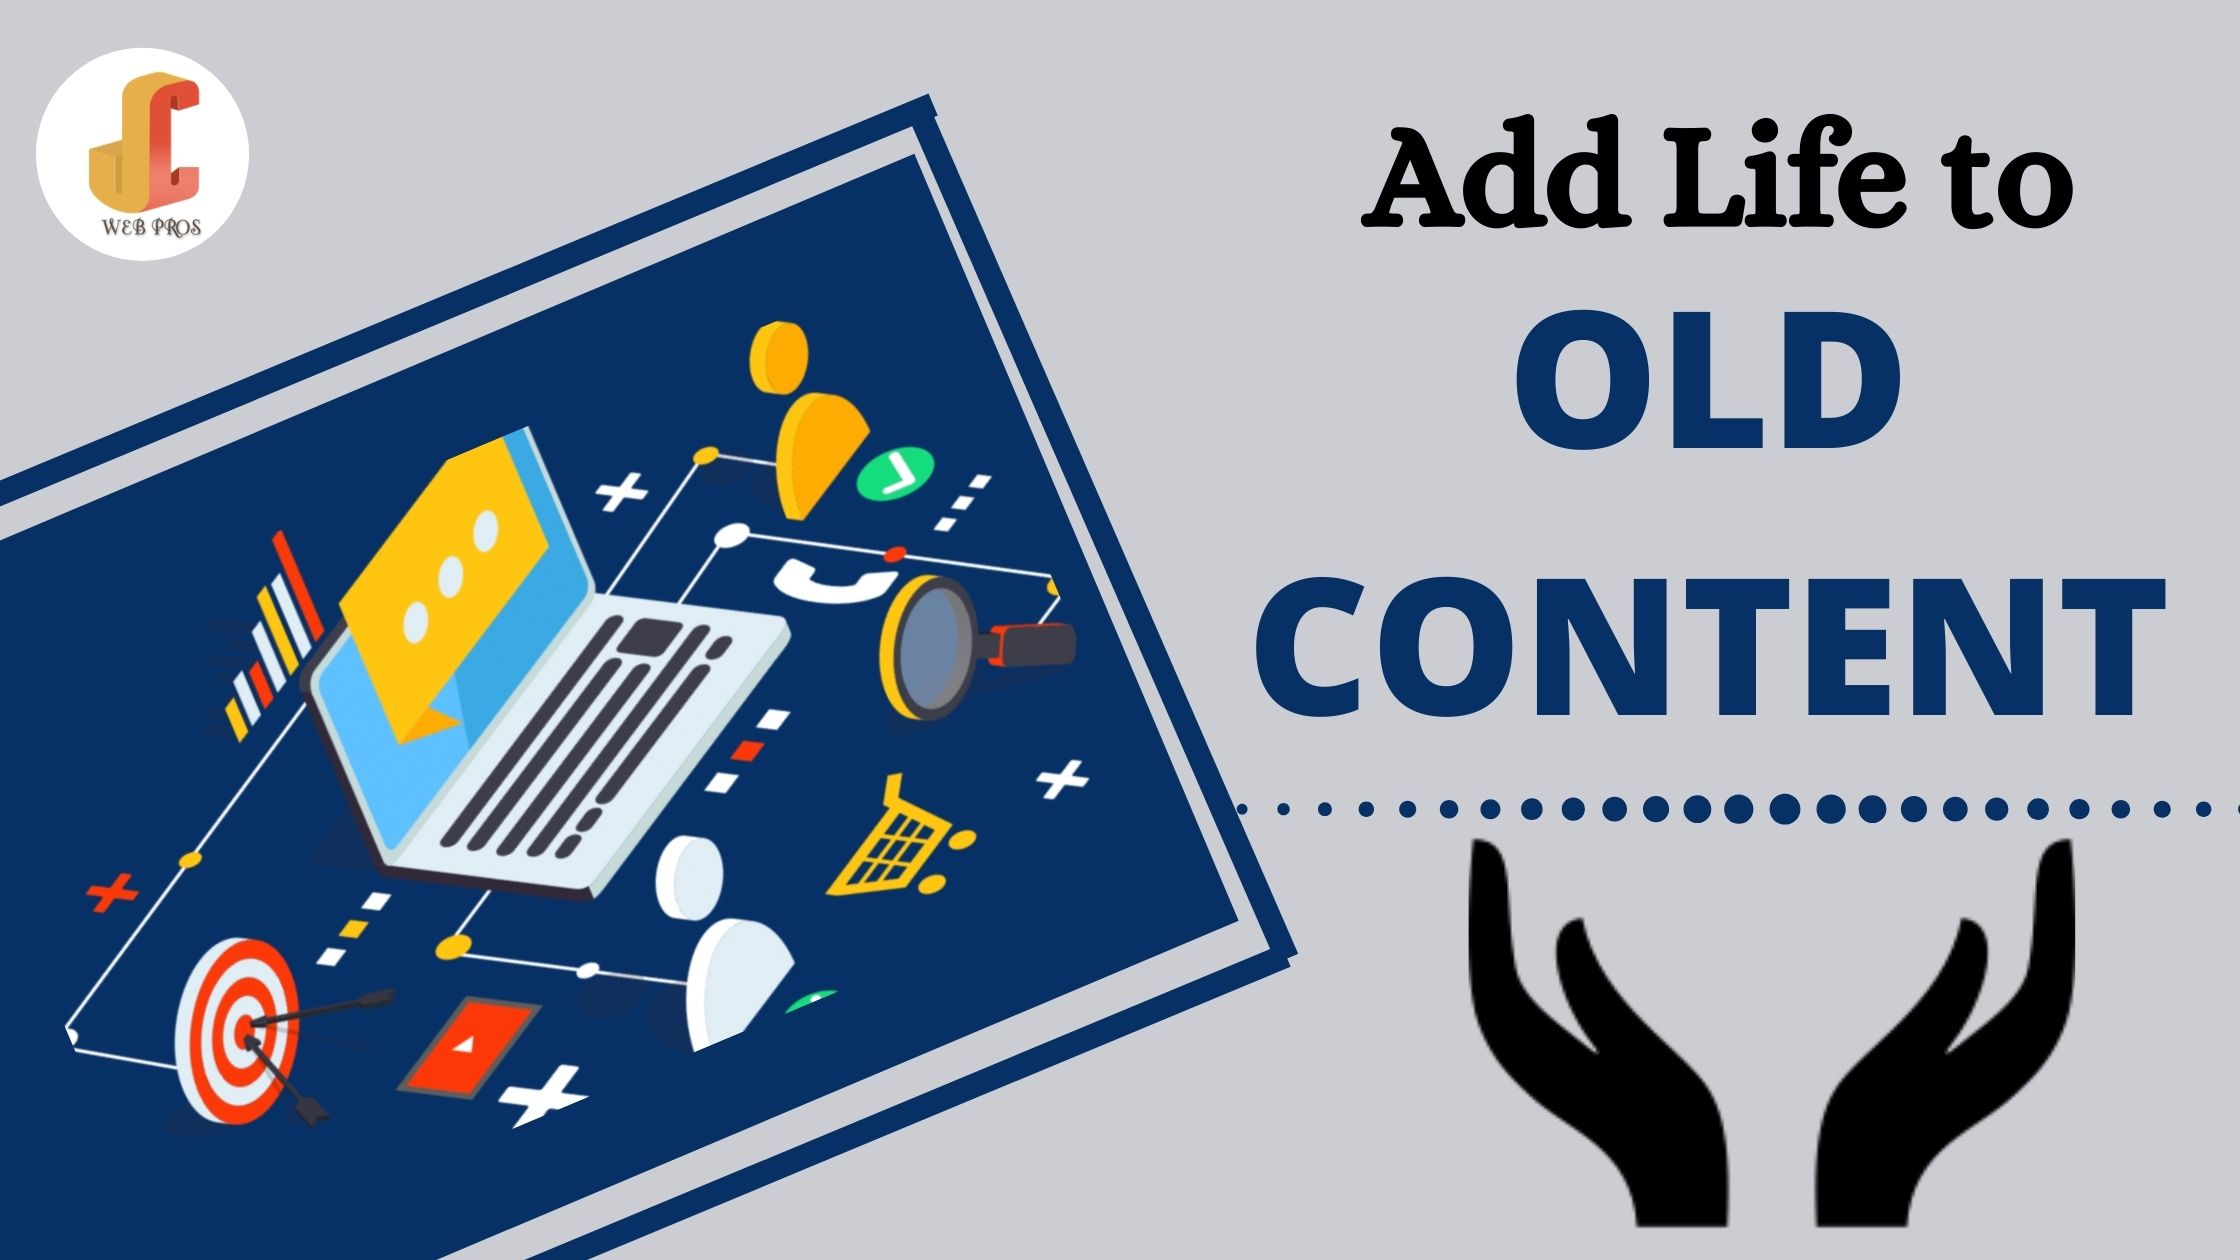 Add Life to Old Content